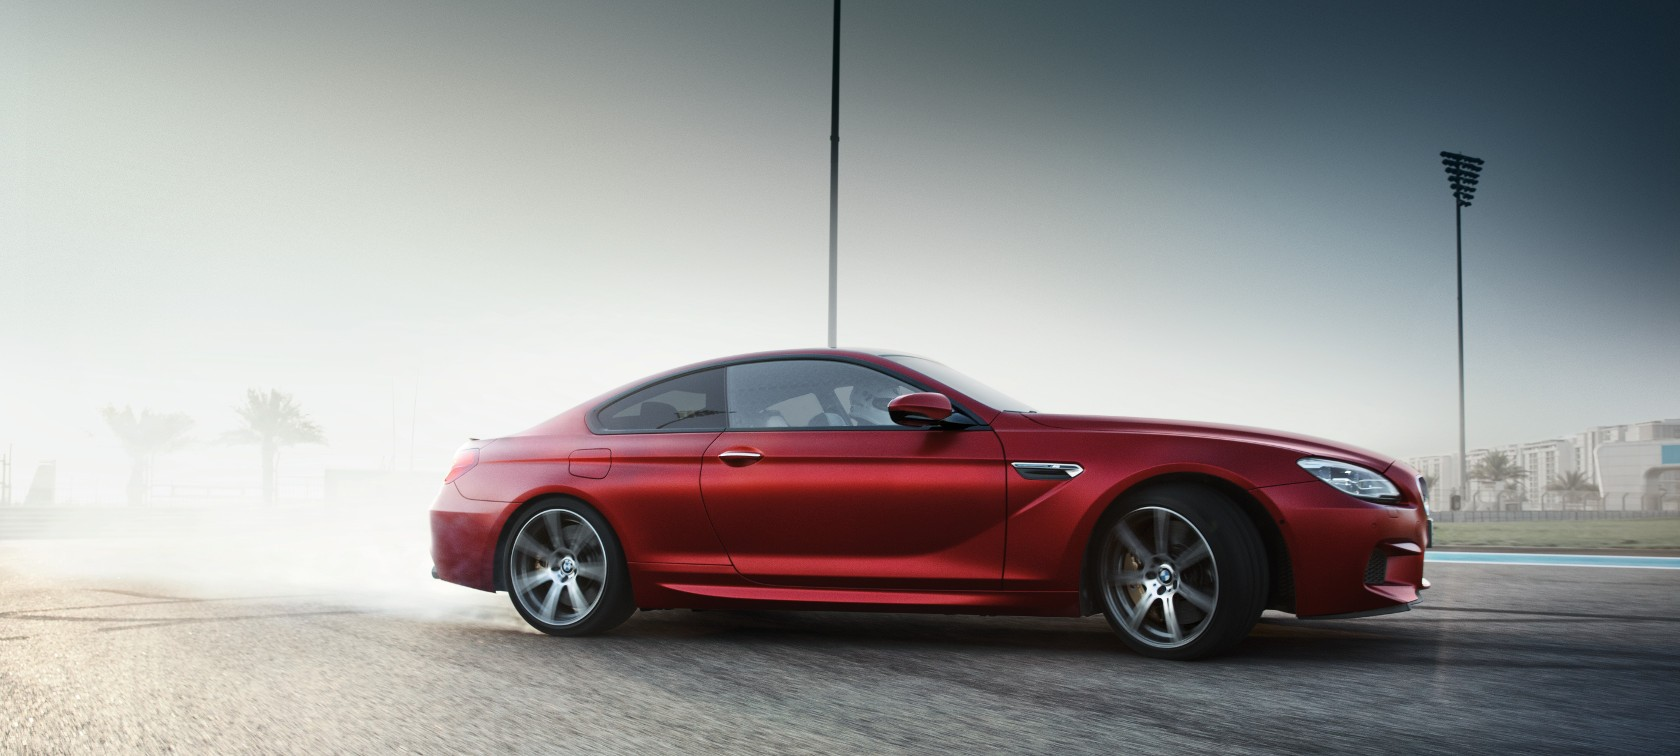 HOT ON THE OUTSIDE. SPICY ON THE INSIDE. The BMW M6